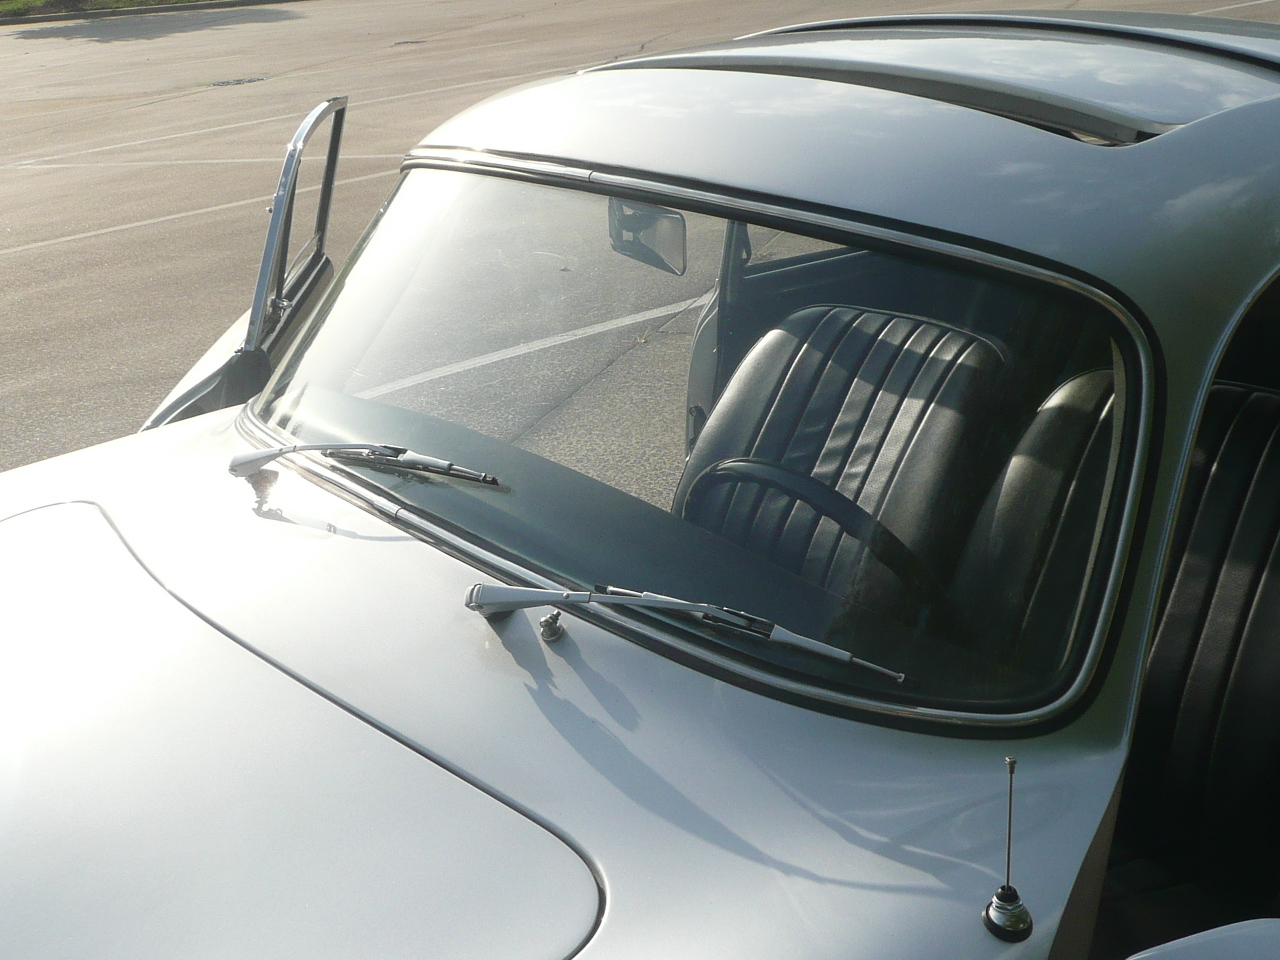 1960 Sunroof Super (138)